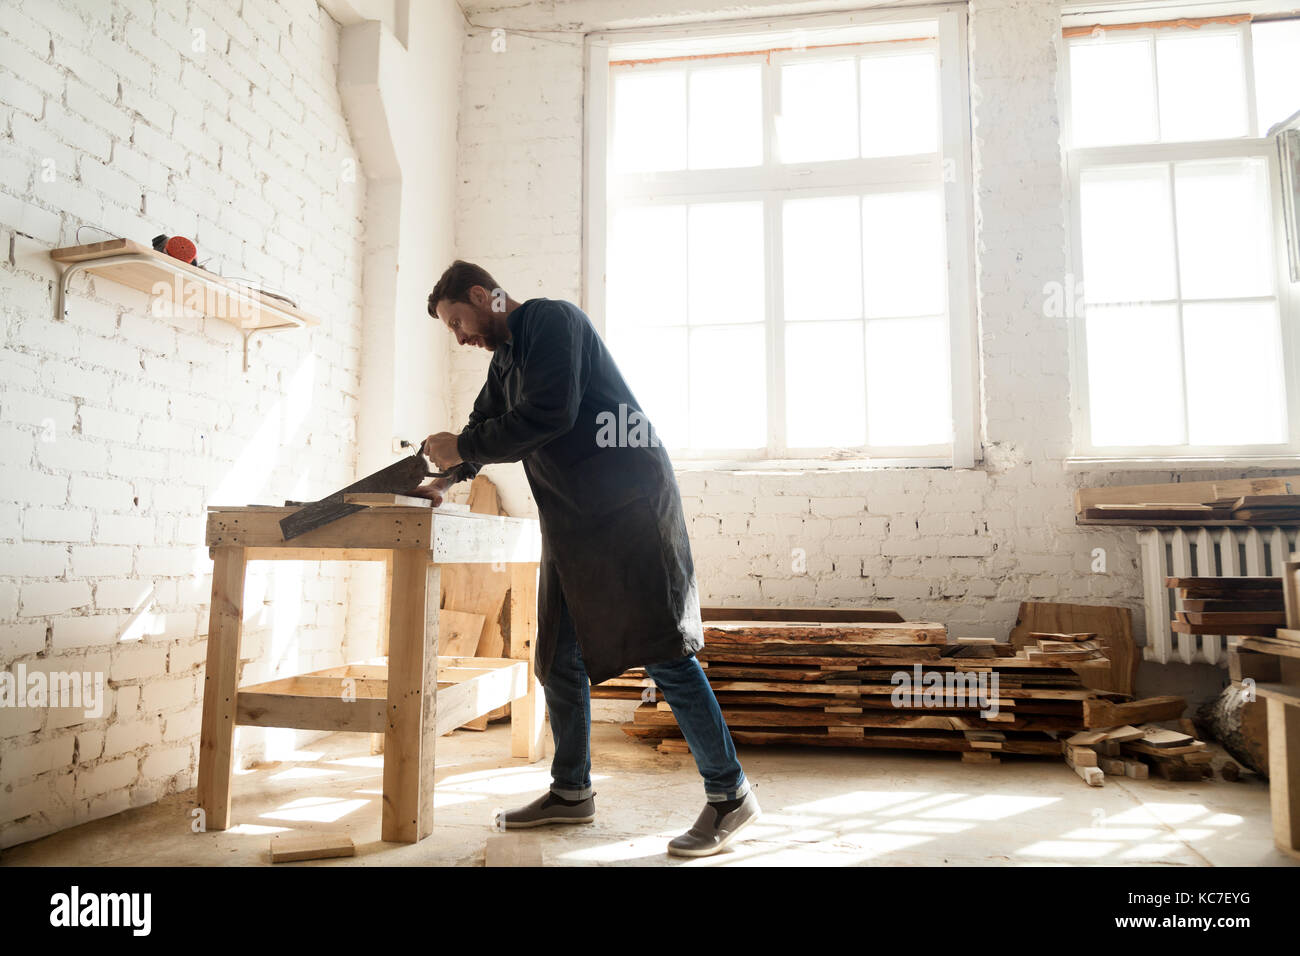 Woodwork and construction. Carpenter using handsaw for sawing wo - Stock Image